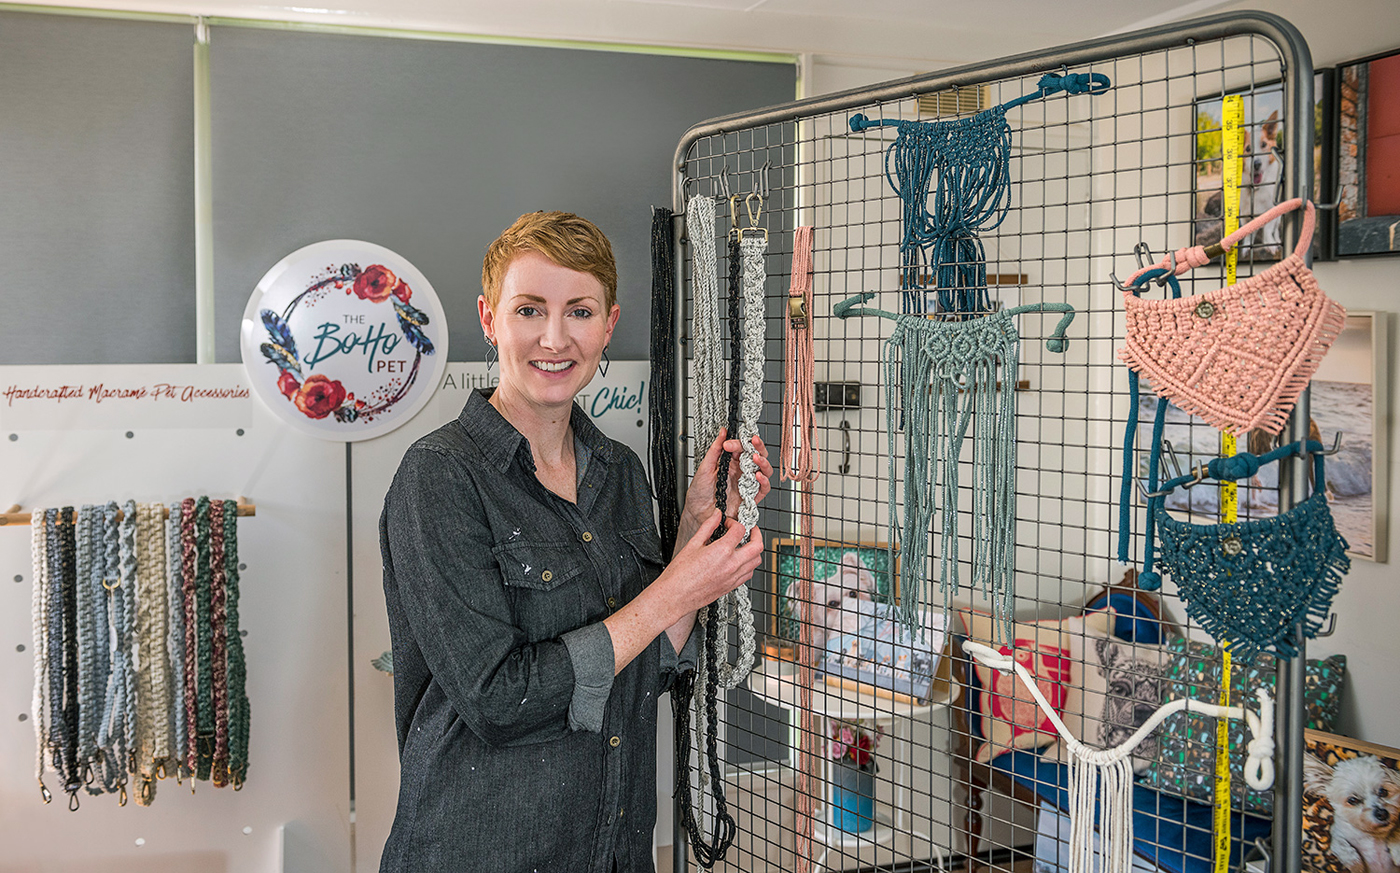 Erin with some of her range of macramé pet accessories and some works in progress